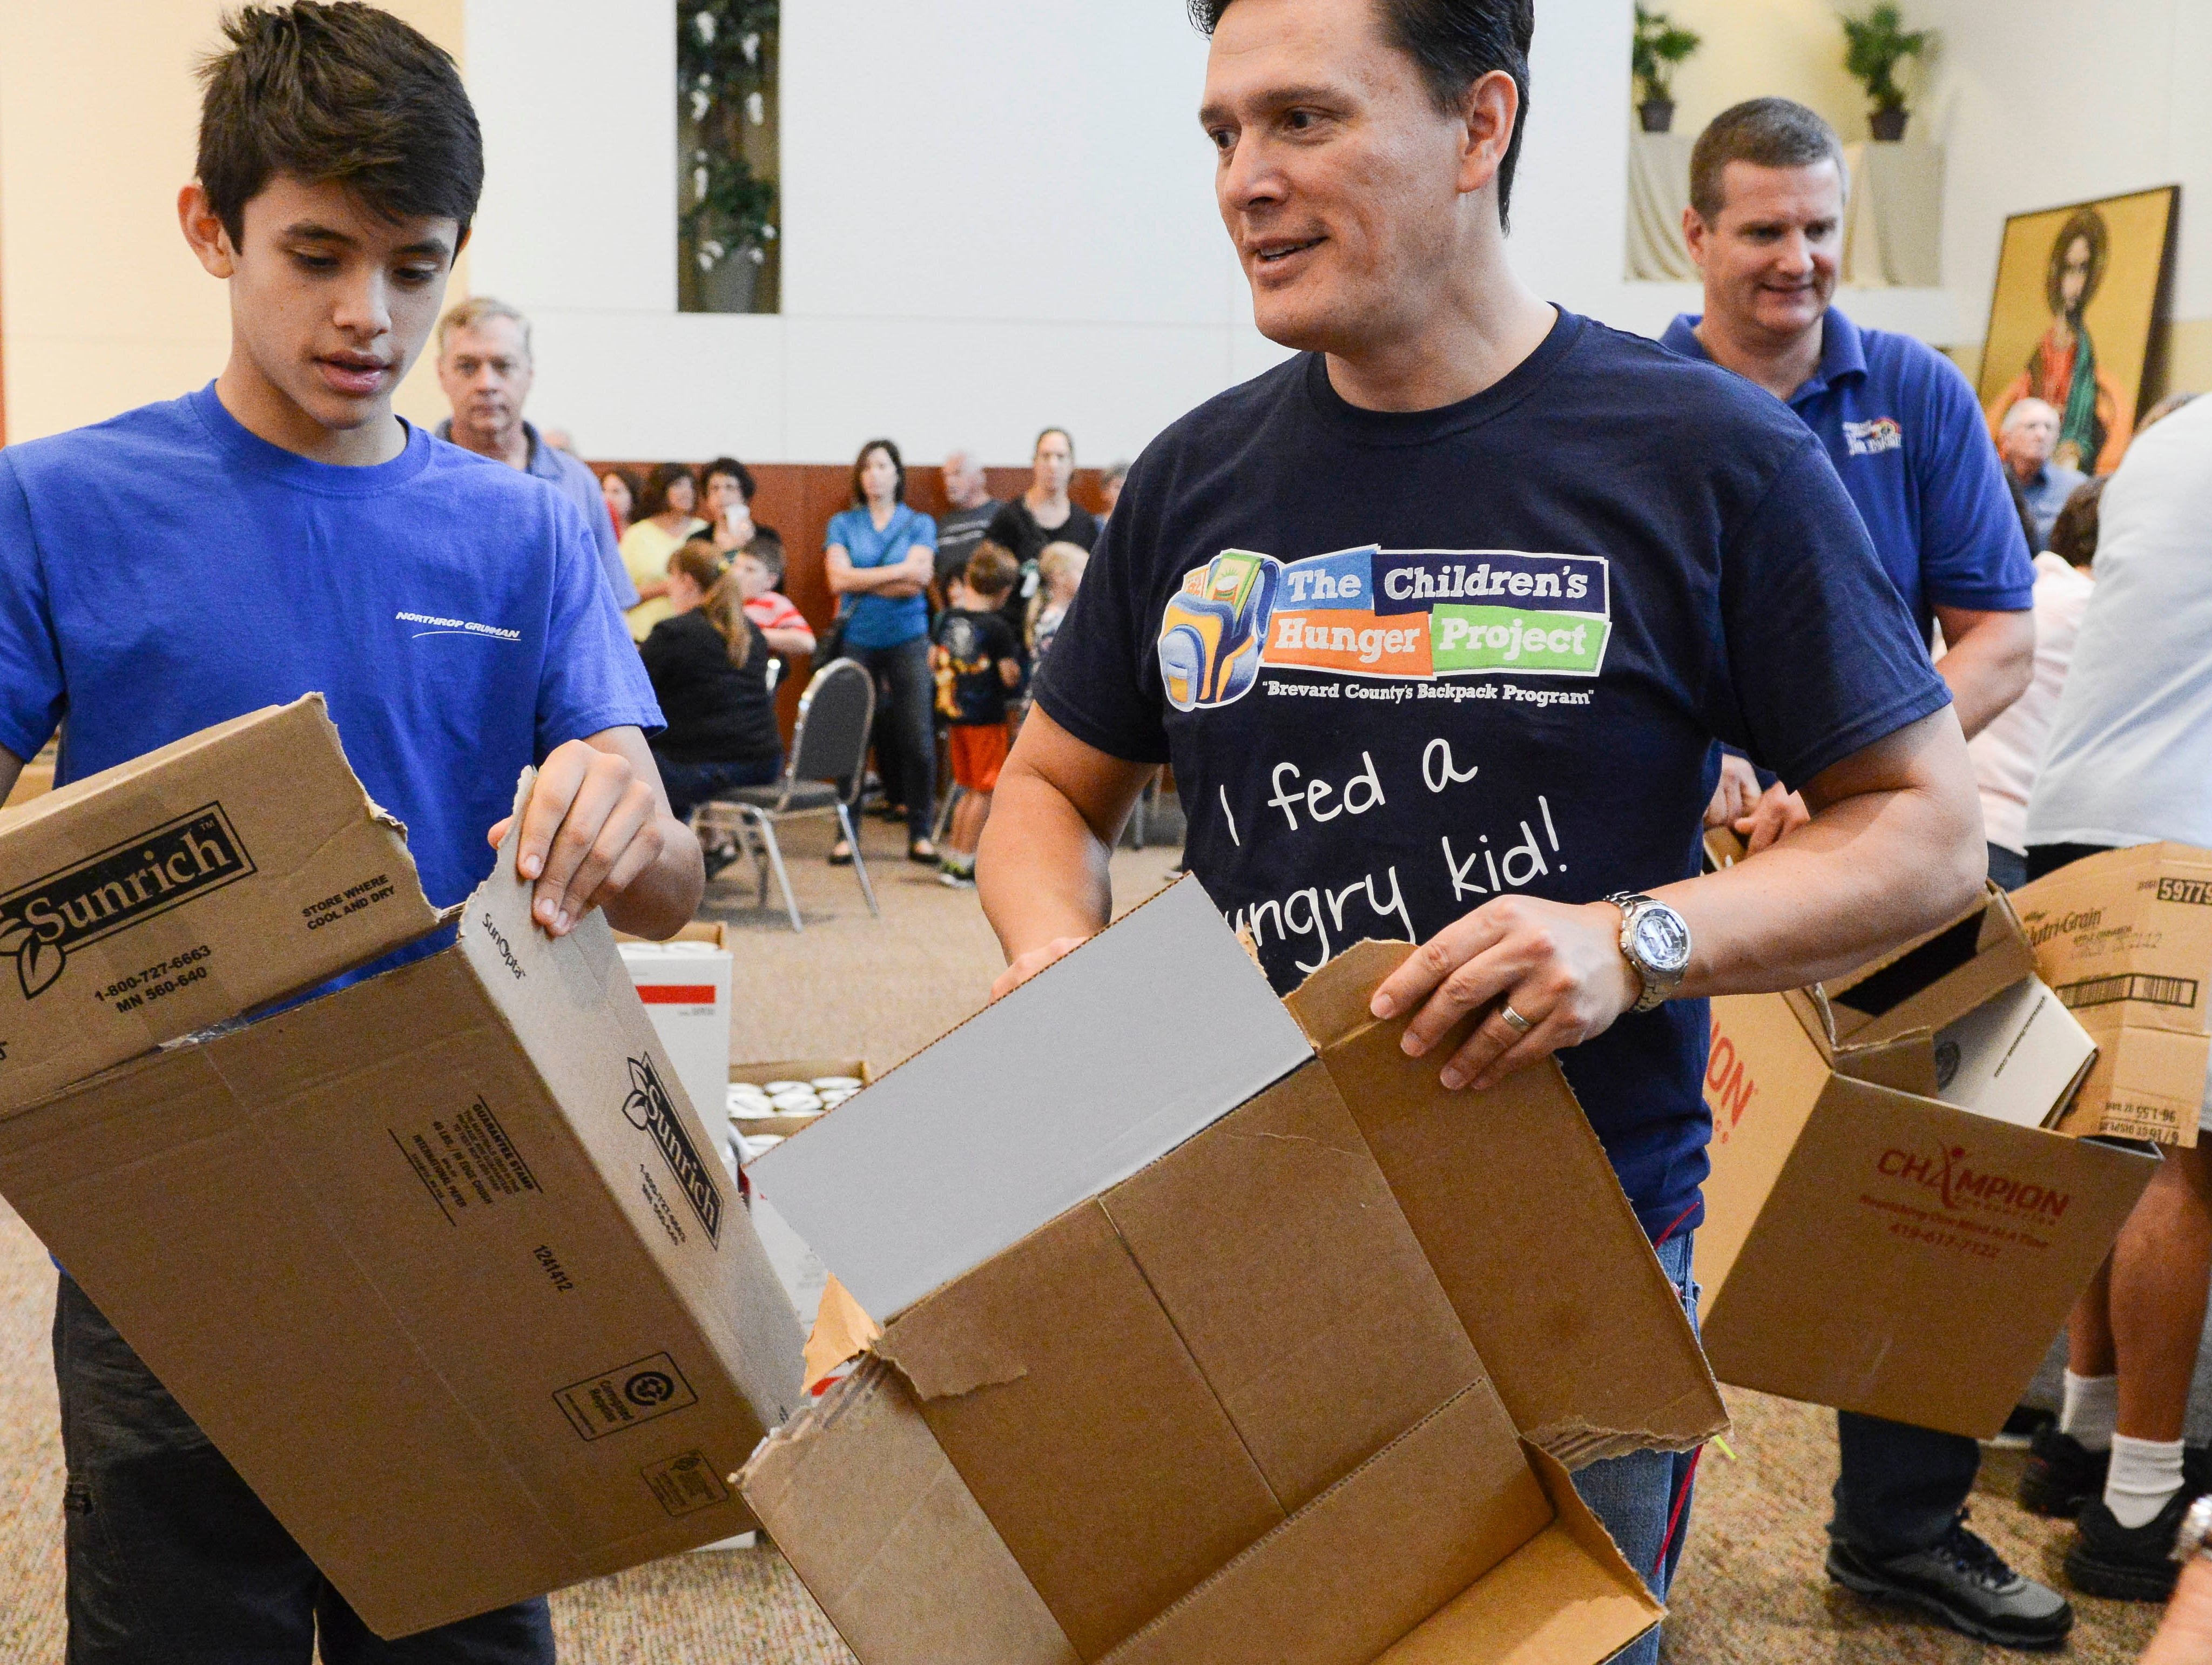 Matthew Tecson and his dad Art help break down empty boxes after using the contents to make food kits for children.  Hundreds of volunteers showed up at St. John the Evangelist Church in Viera to help pack lunch kits for The Children's Hunger Project.